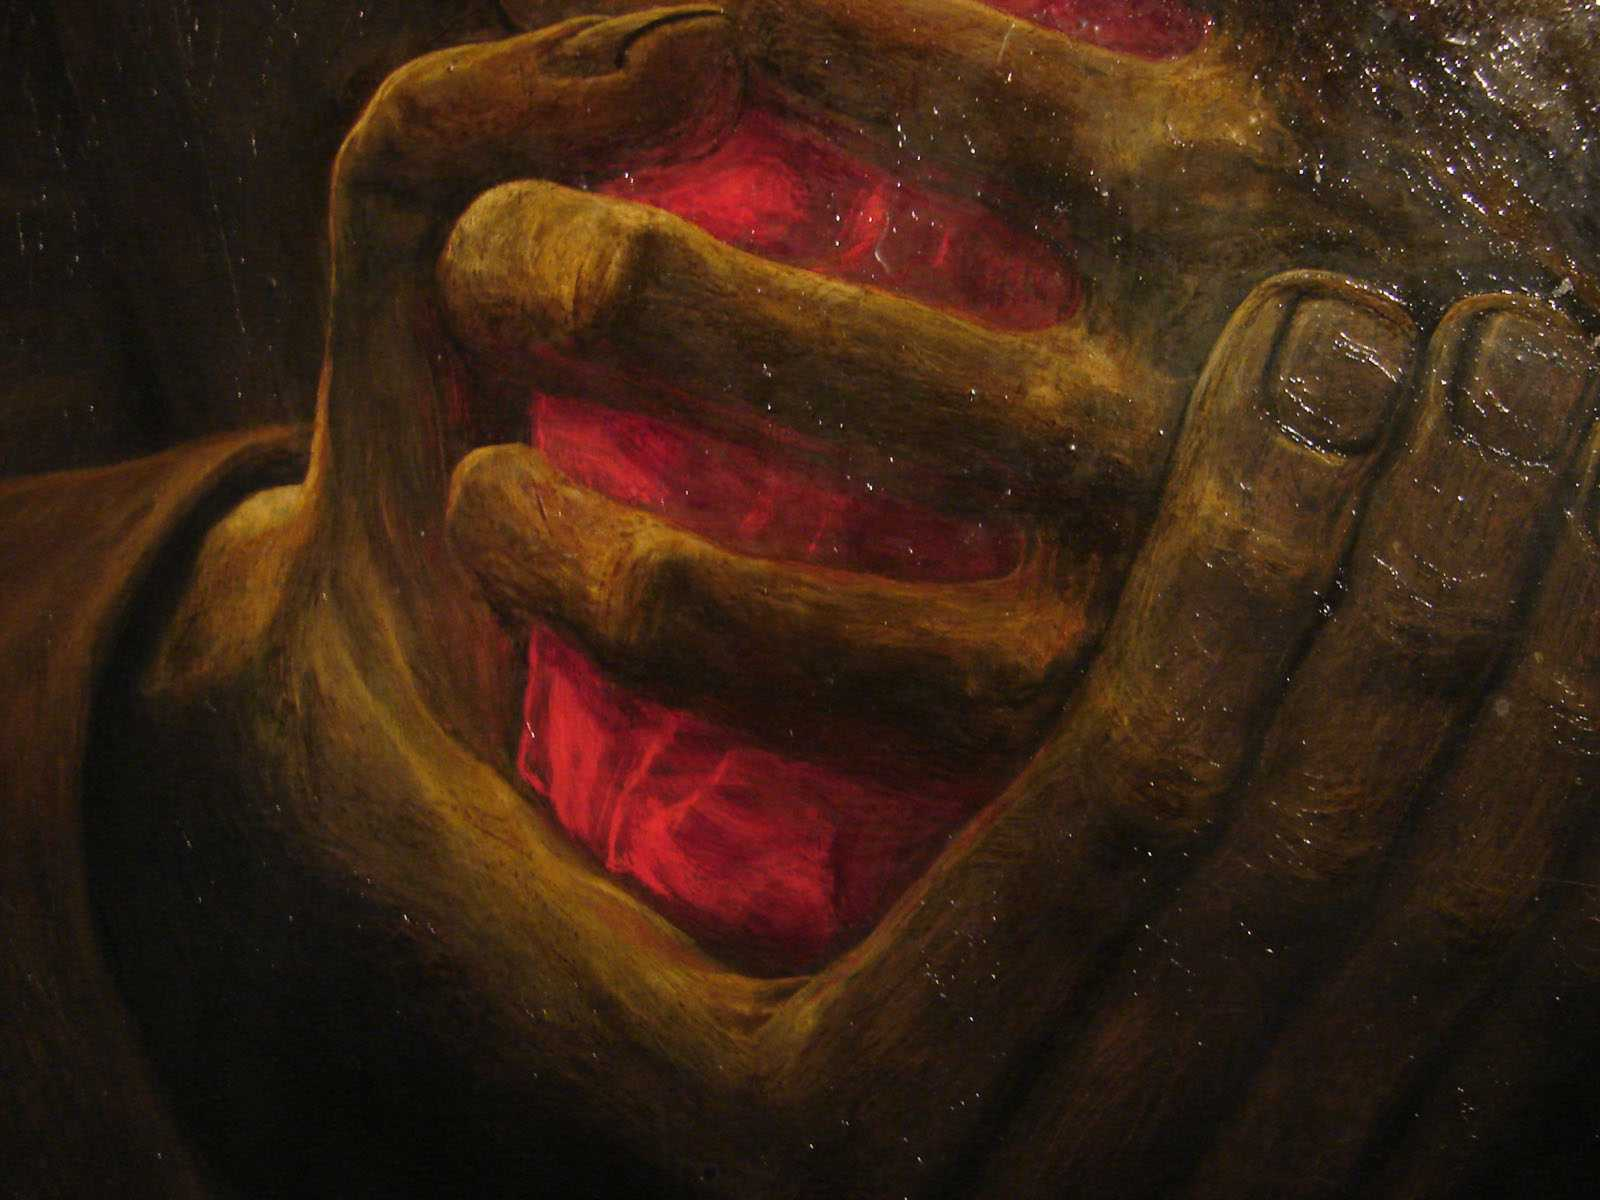 Détail d'une peinture de Zdzislaw Beksinski